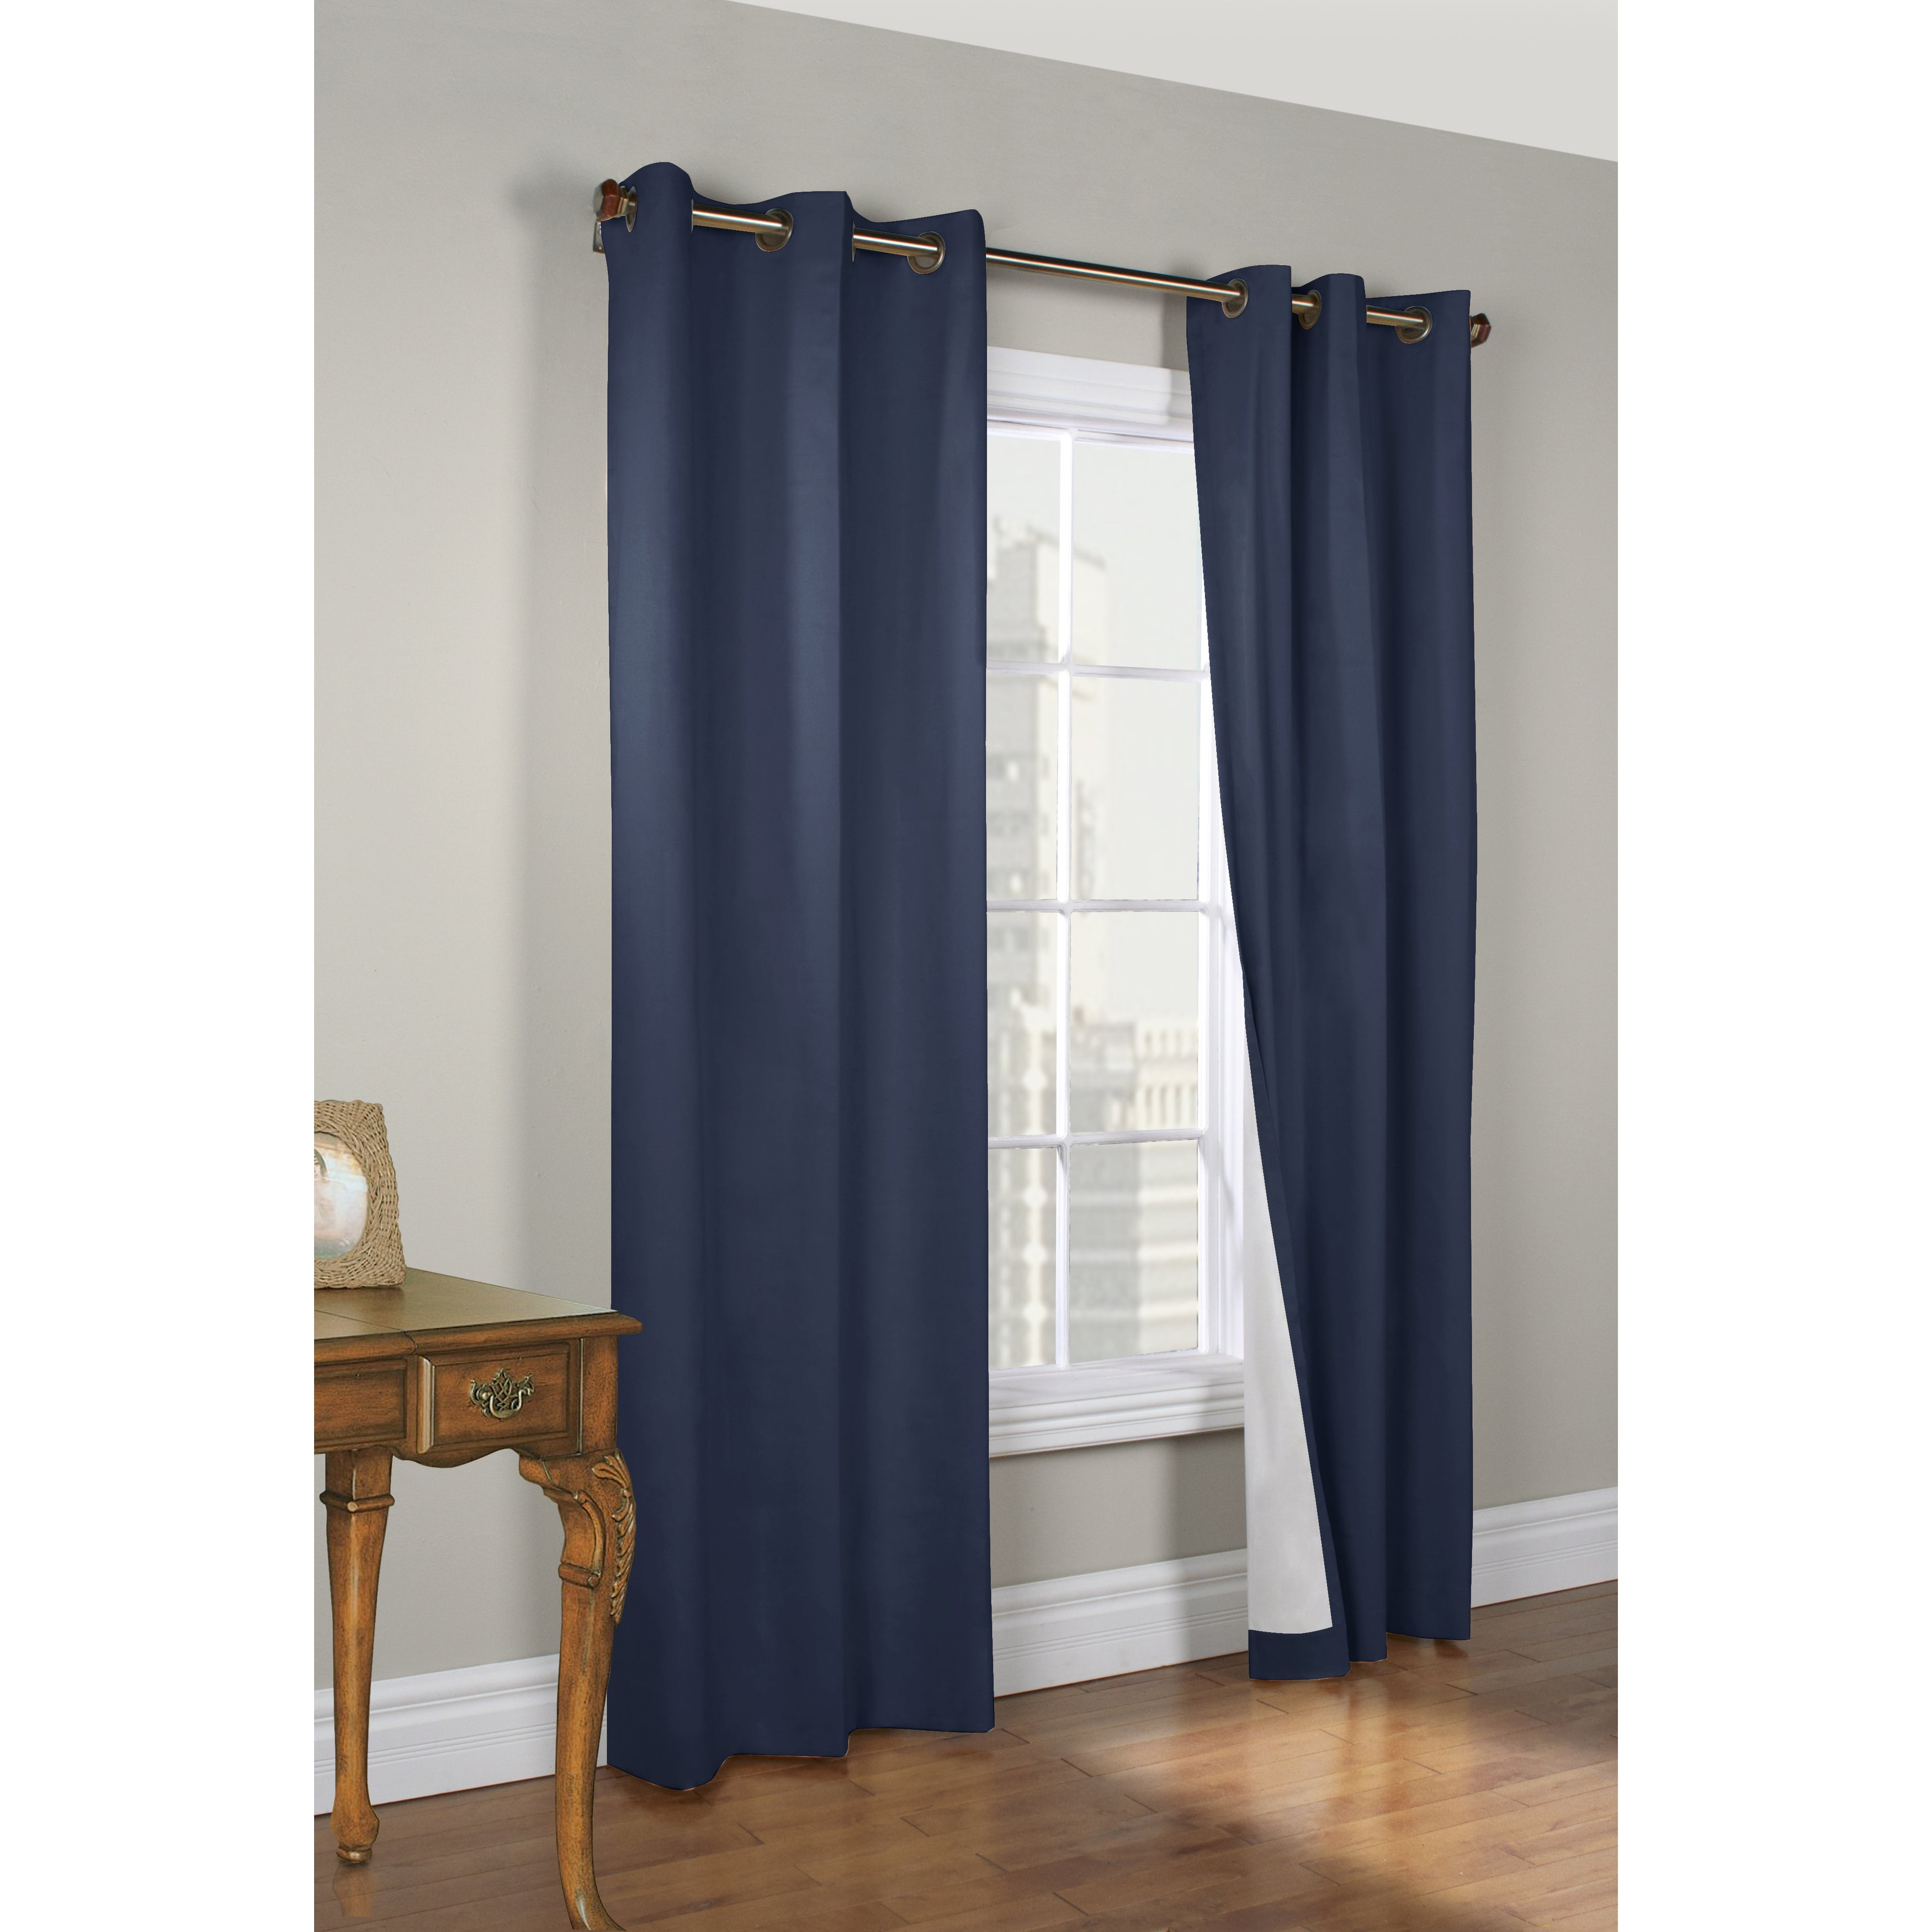 Weathermate Thermalogic Insulated 84-inch Curtain Panel P...